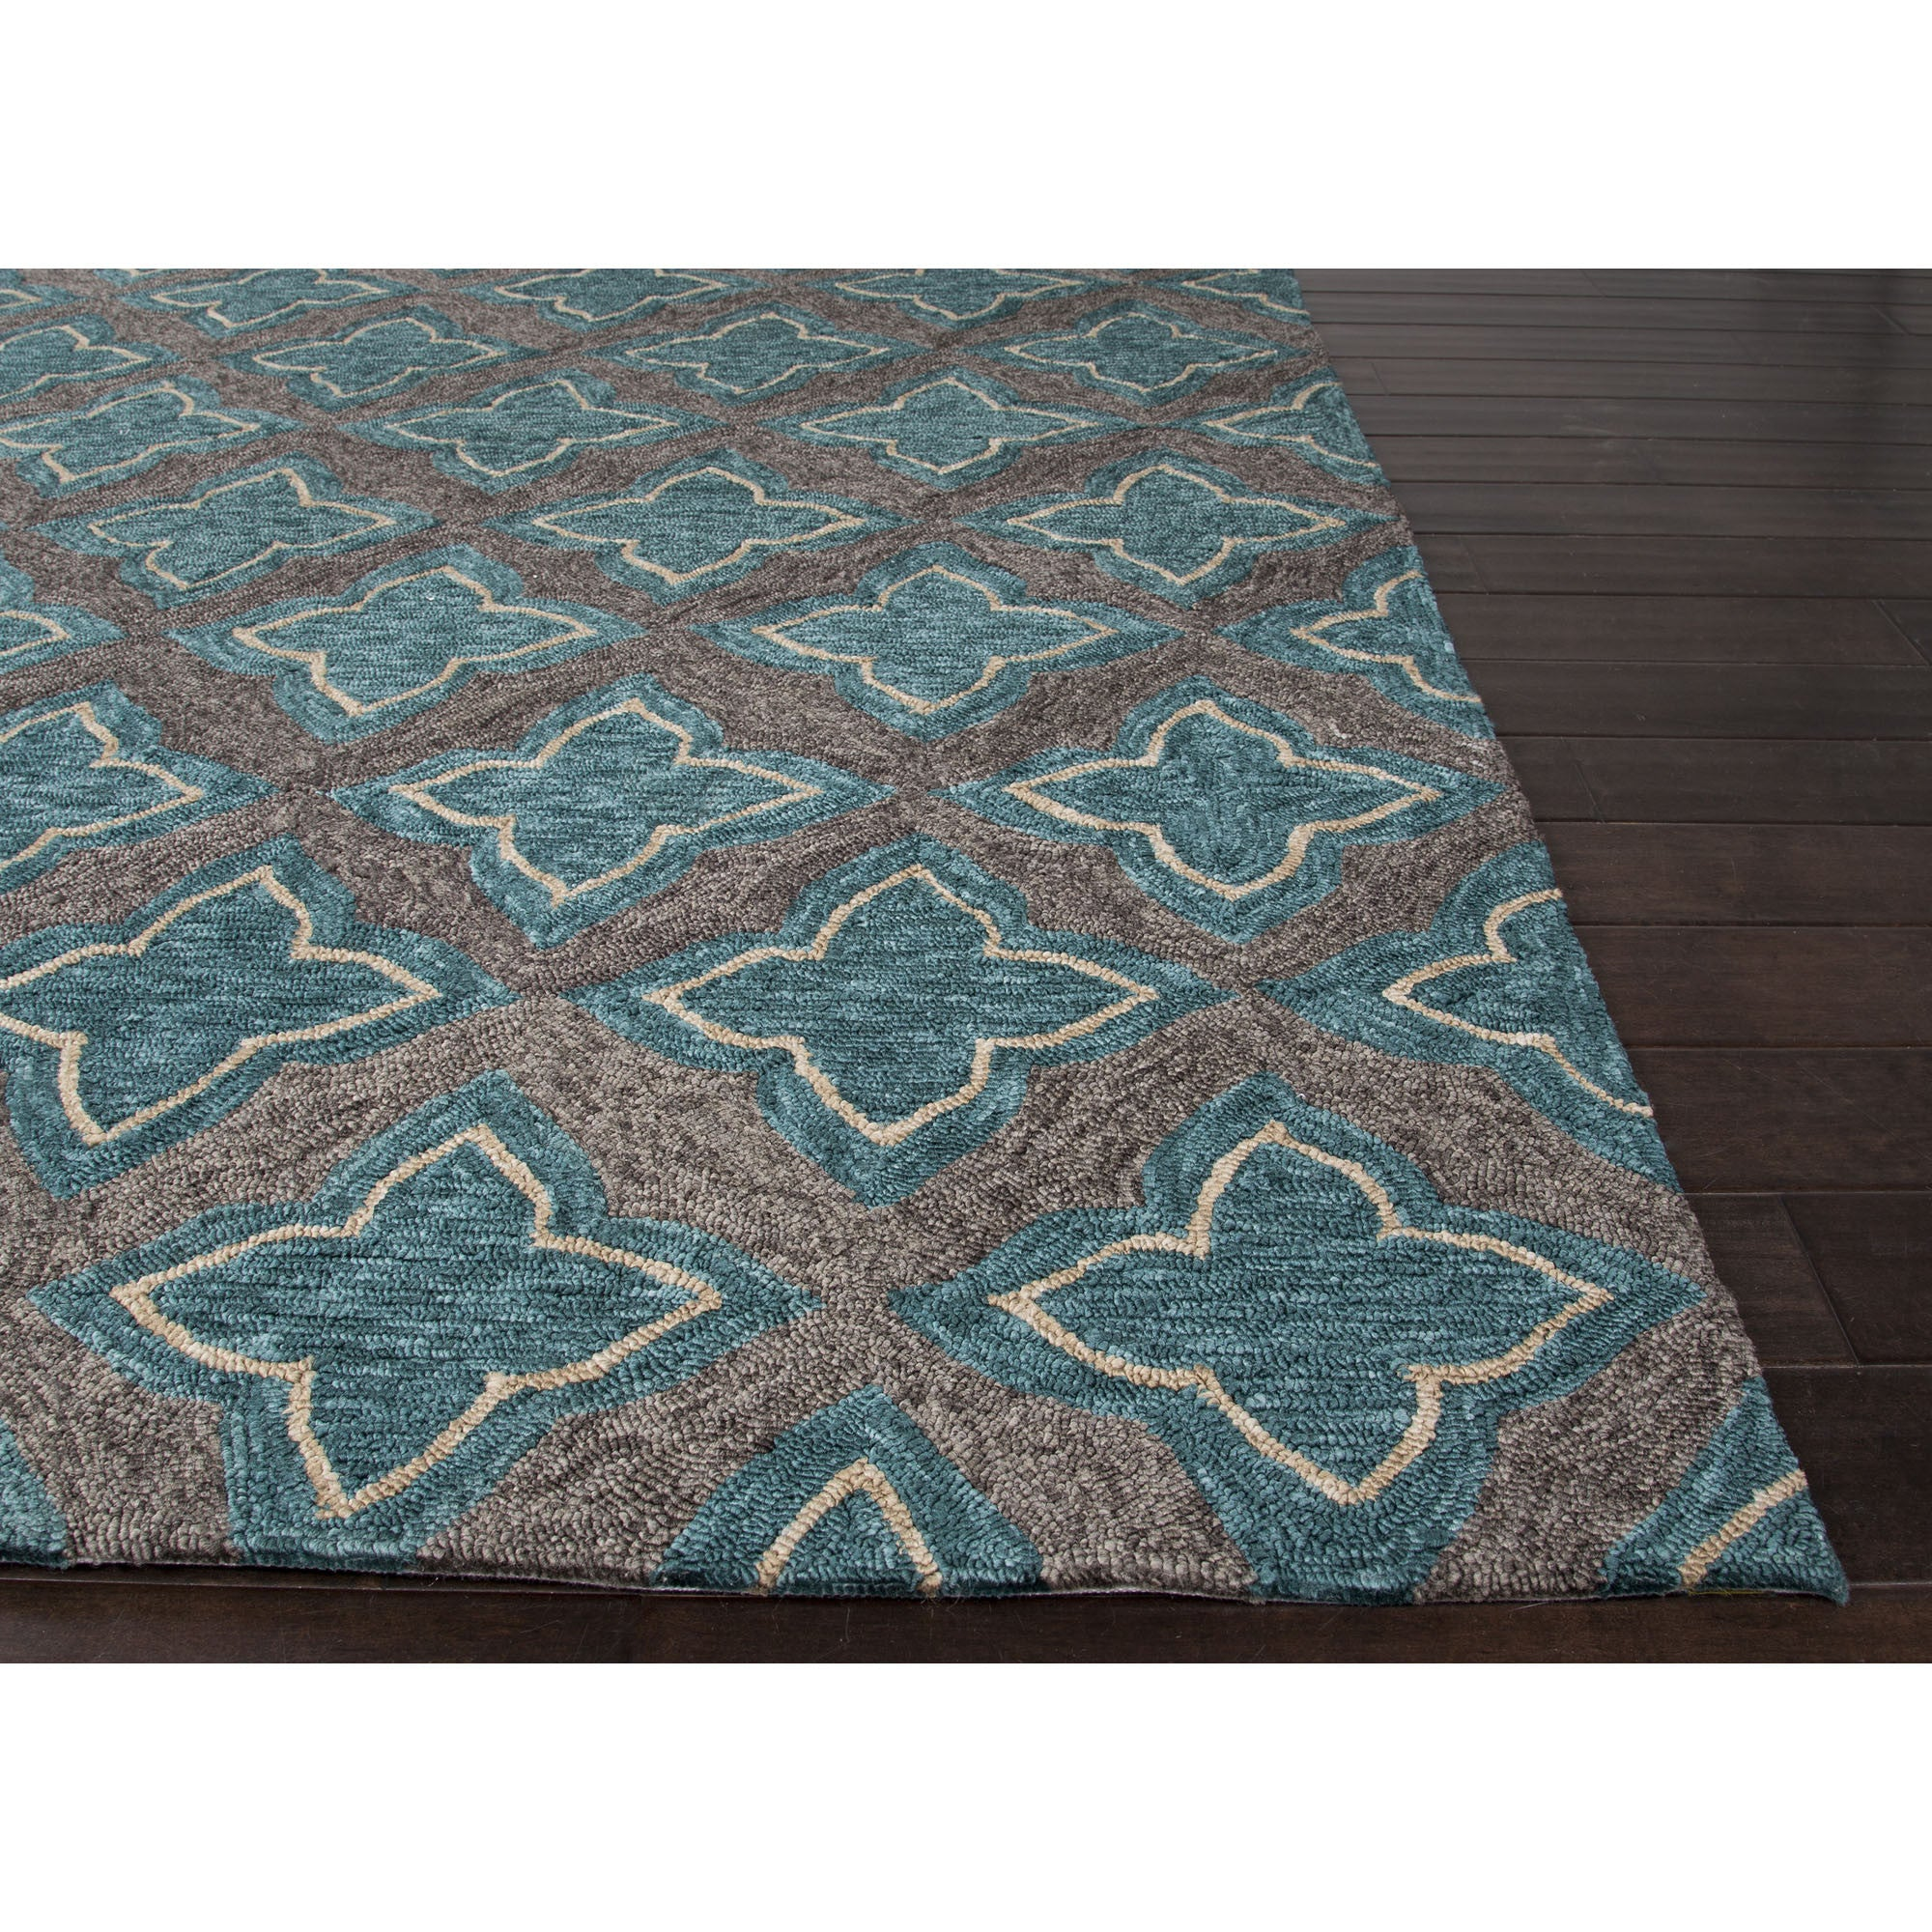 Jaipur Rugs IndoorOutdoor Moroccan Pattern Blue/Gray